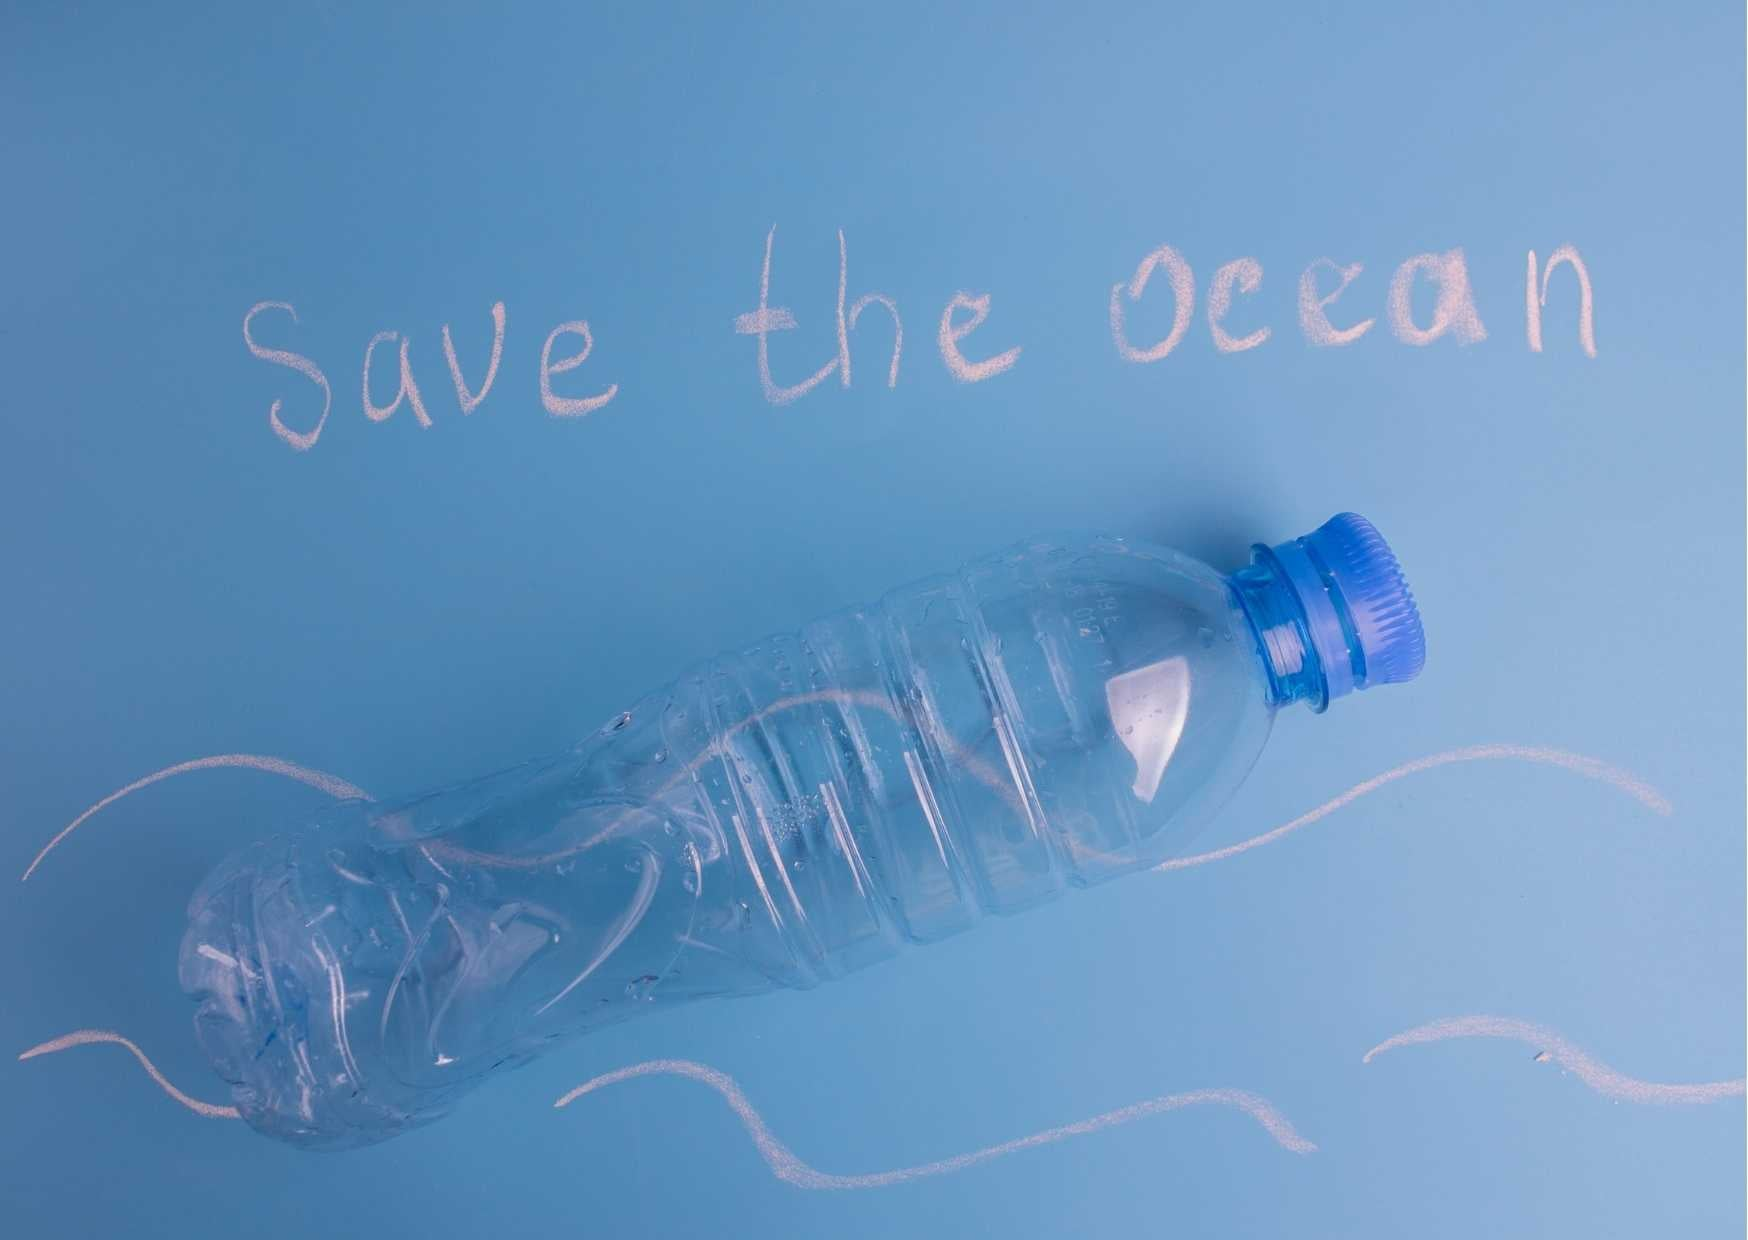 Save the ocean   The Great Pacific Ocean Garbage Patch